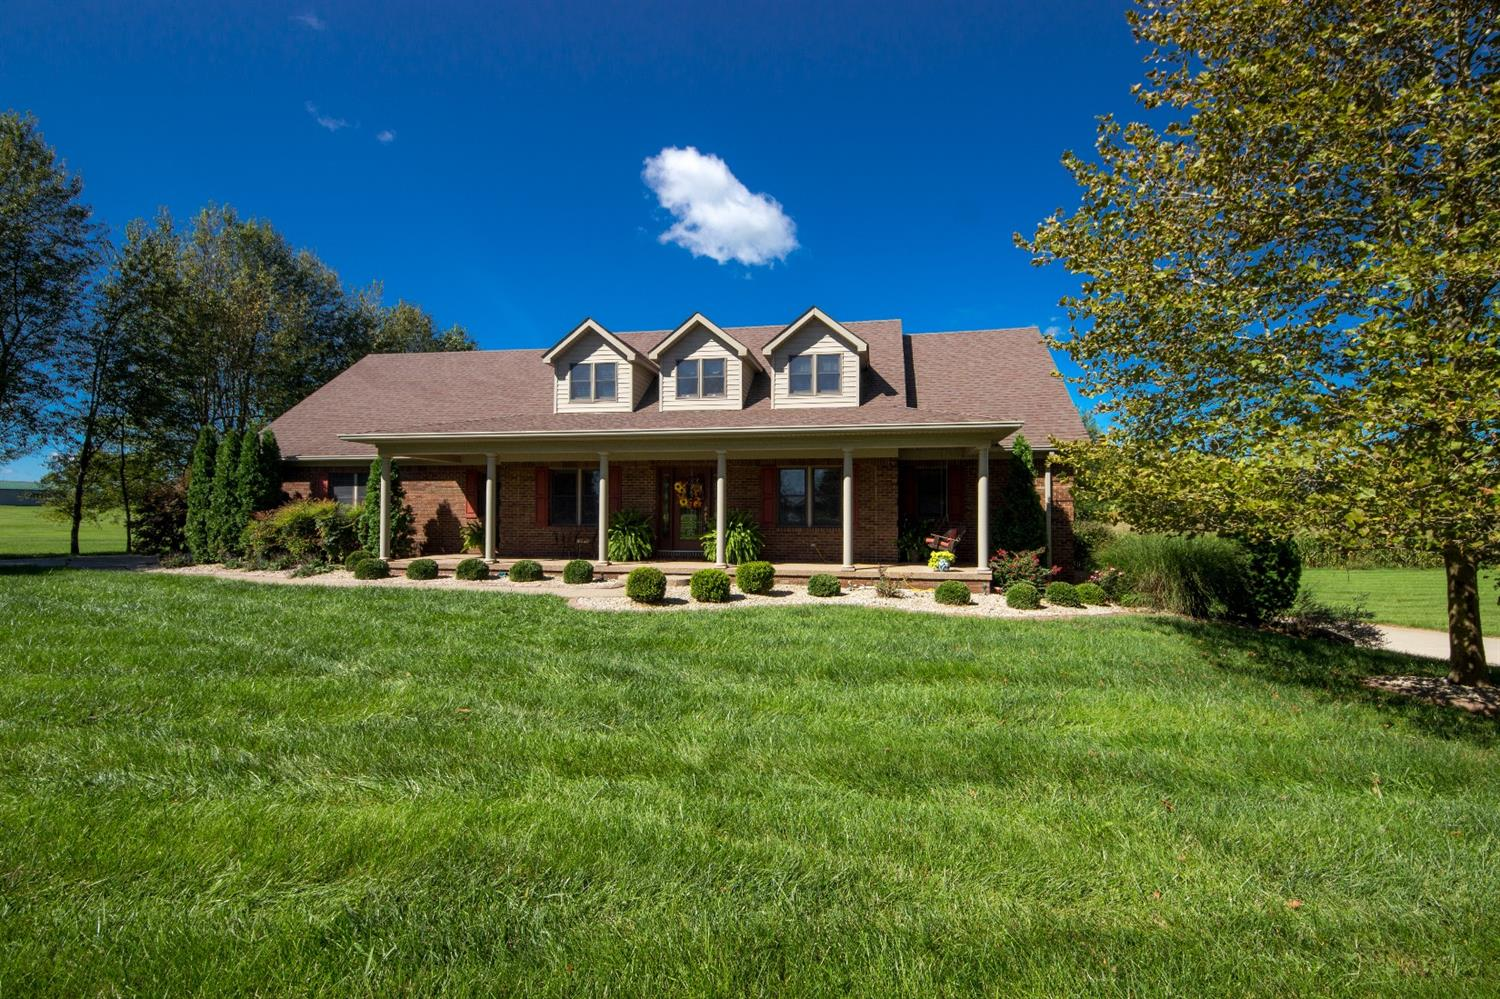 Homes For Sale in 1195 Quirks Run Rd, Danville, KY 40422 Subdivision